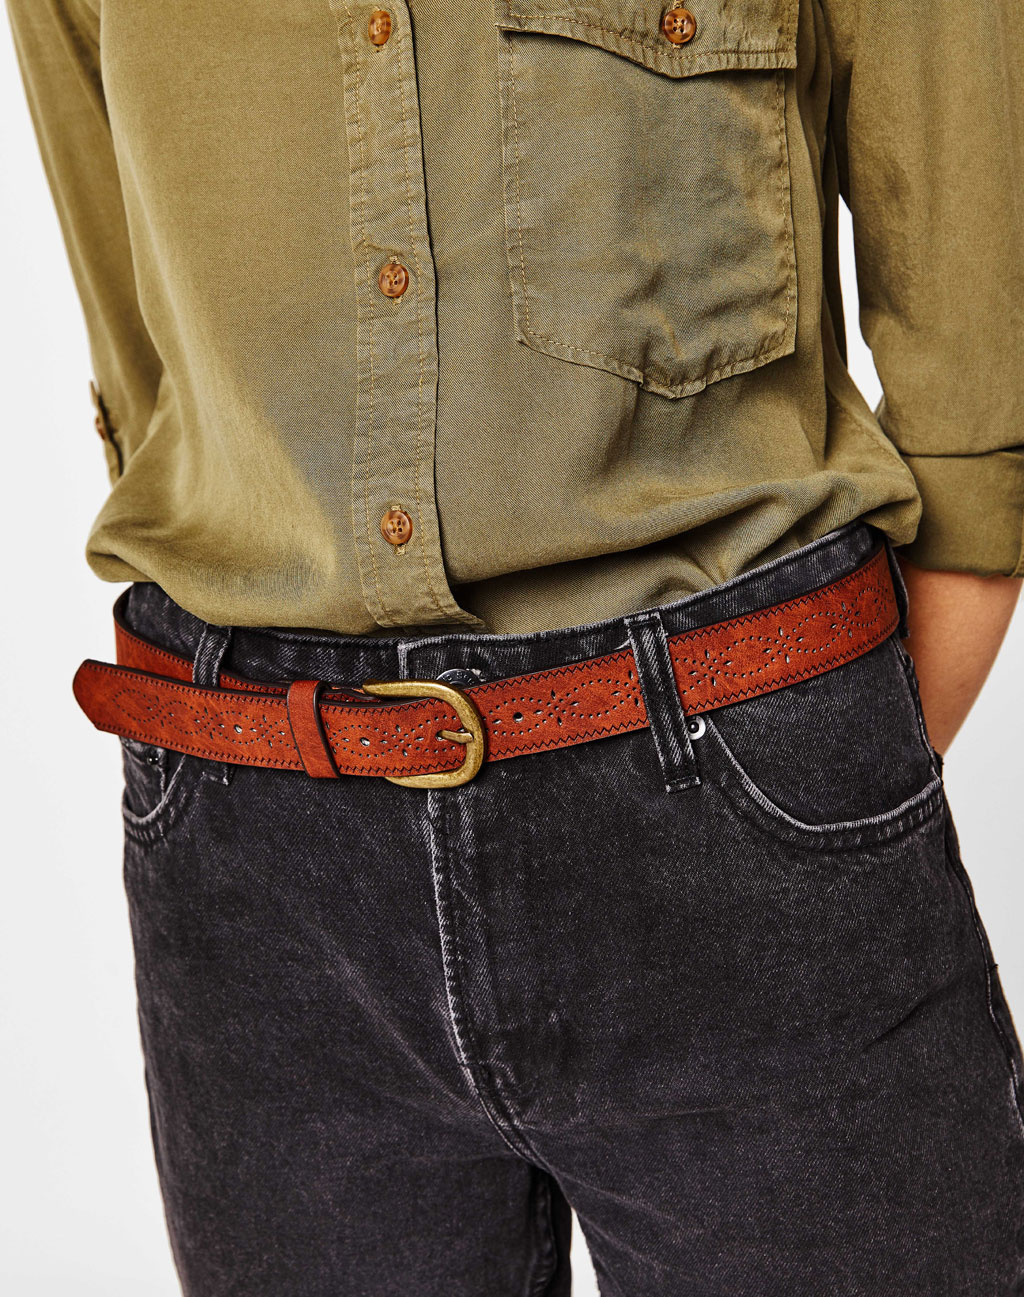 Wide perforated belt